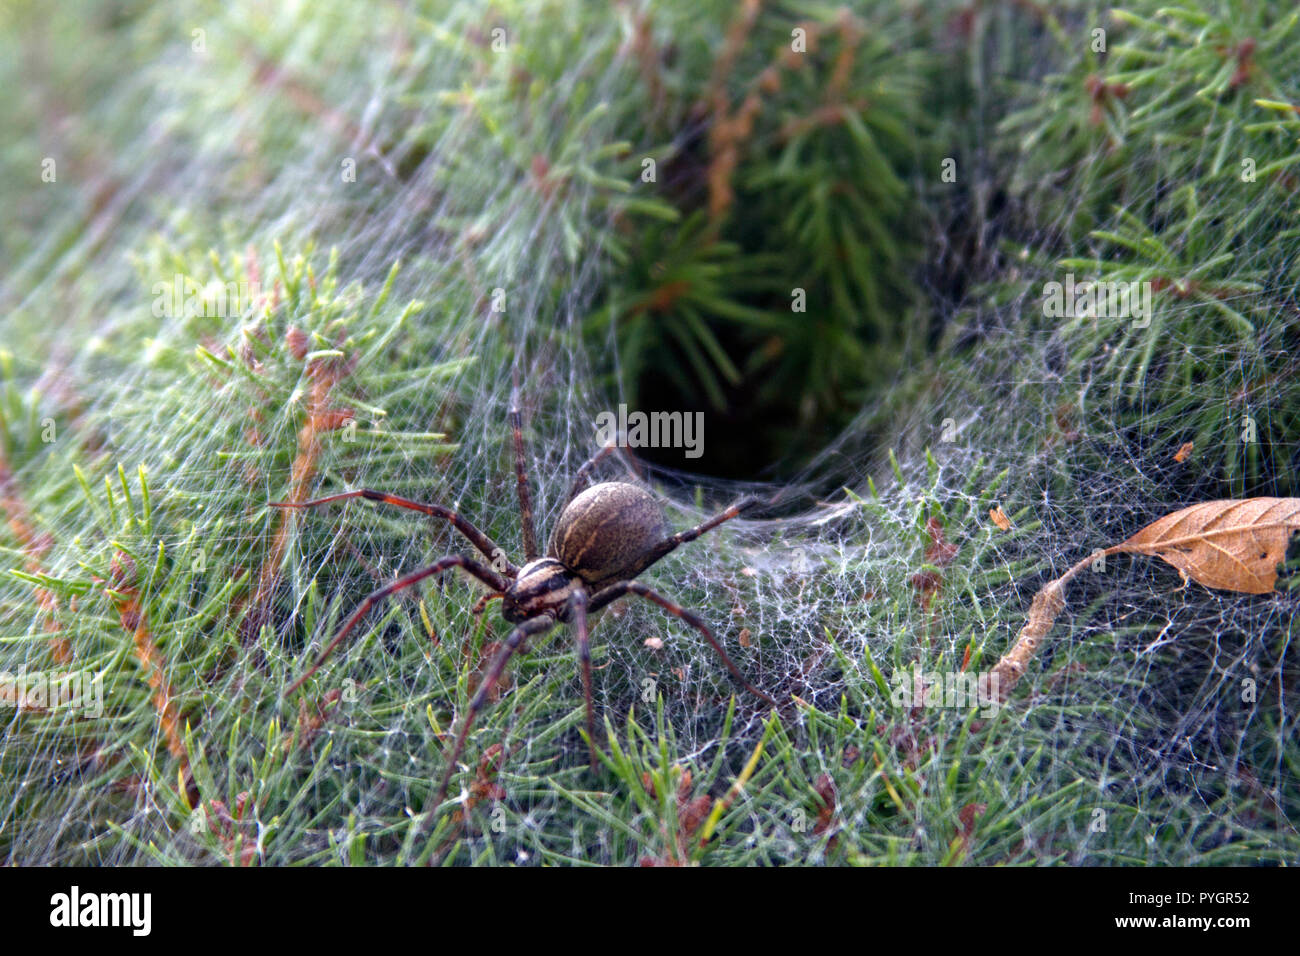 Close up of a venomous funnel web spider leaving its funnel like web nest in an evergreen shrub - Stock Image